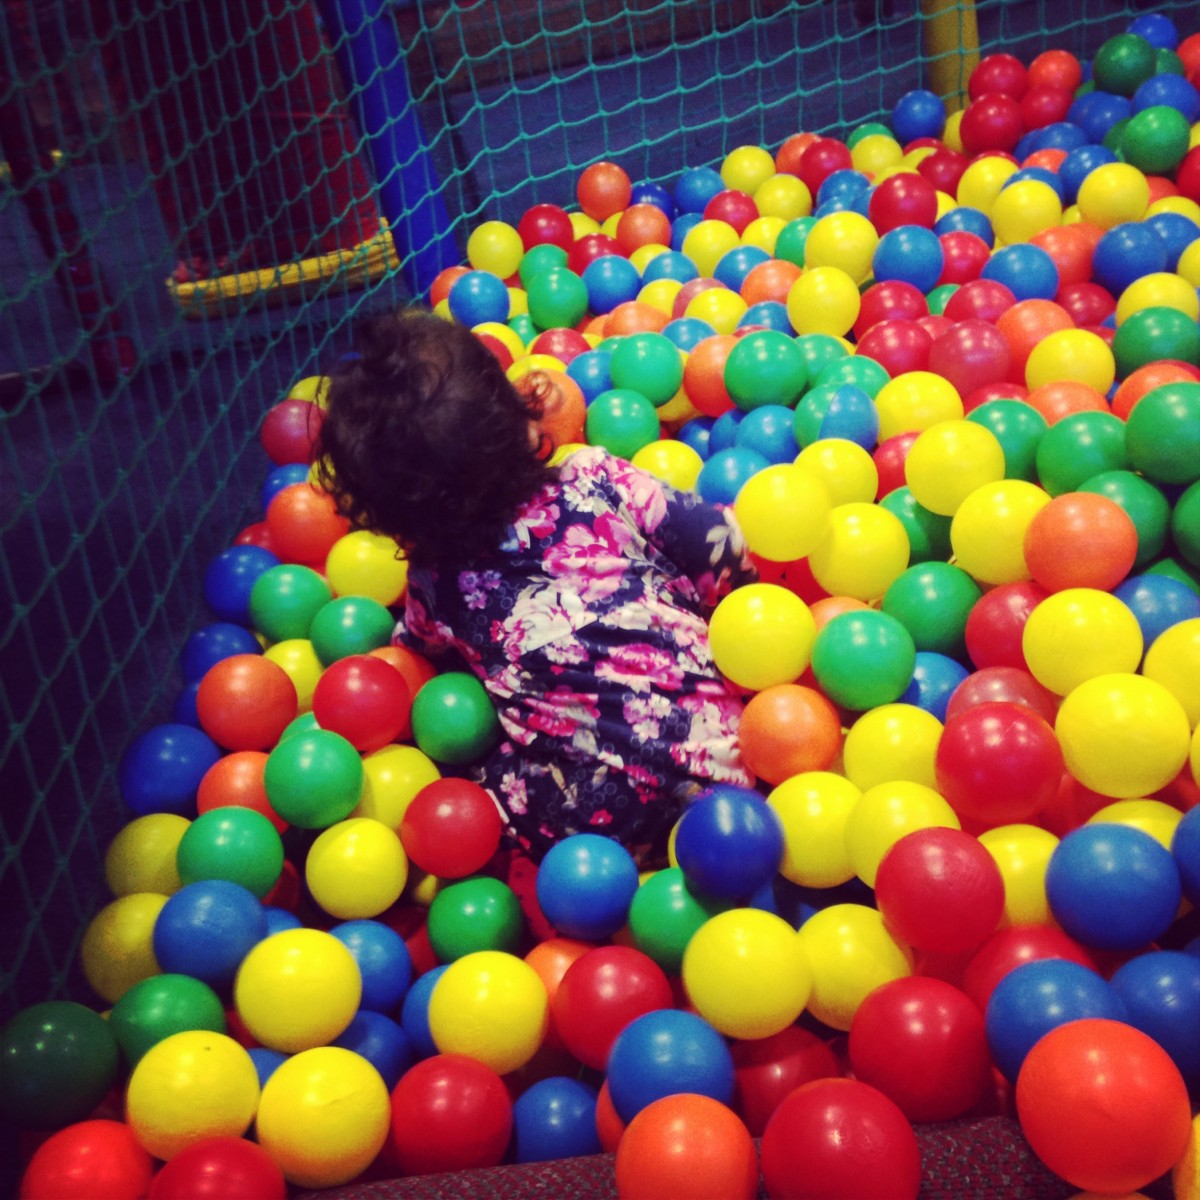 Ball pit at Soft Play